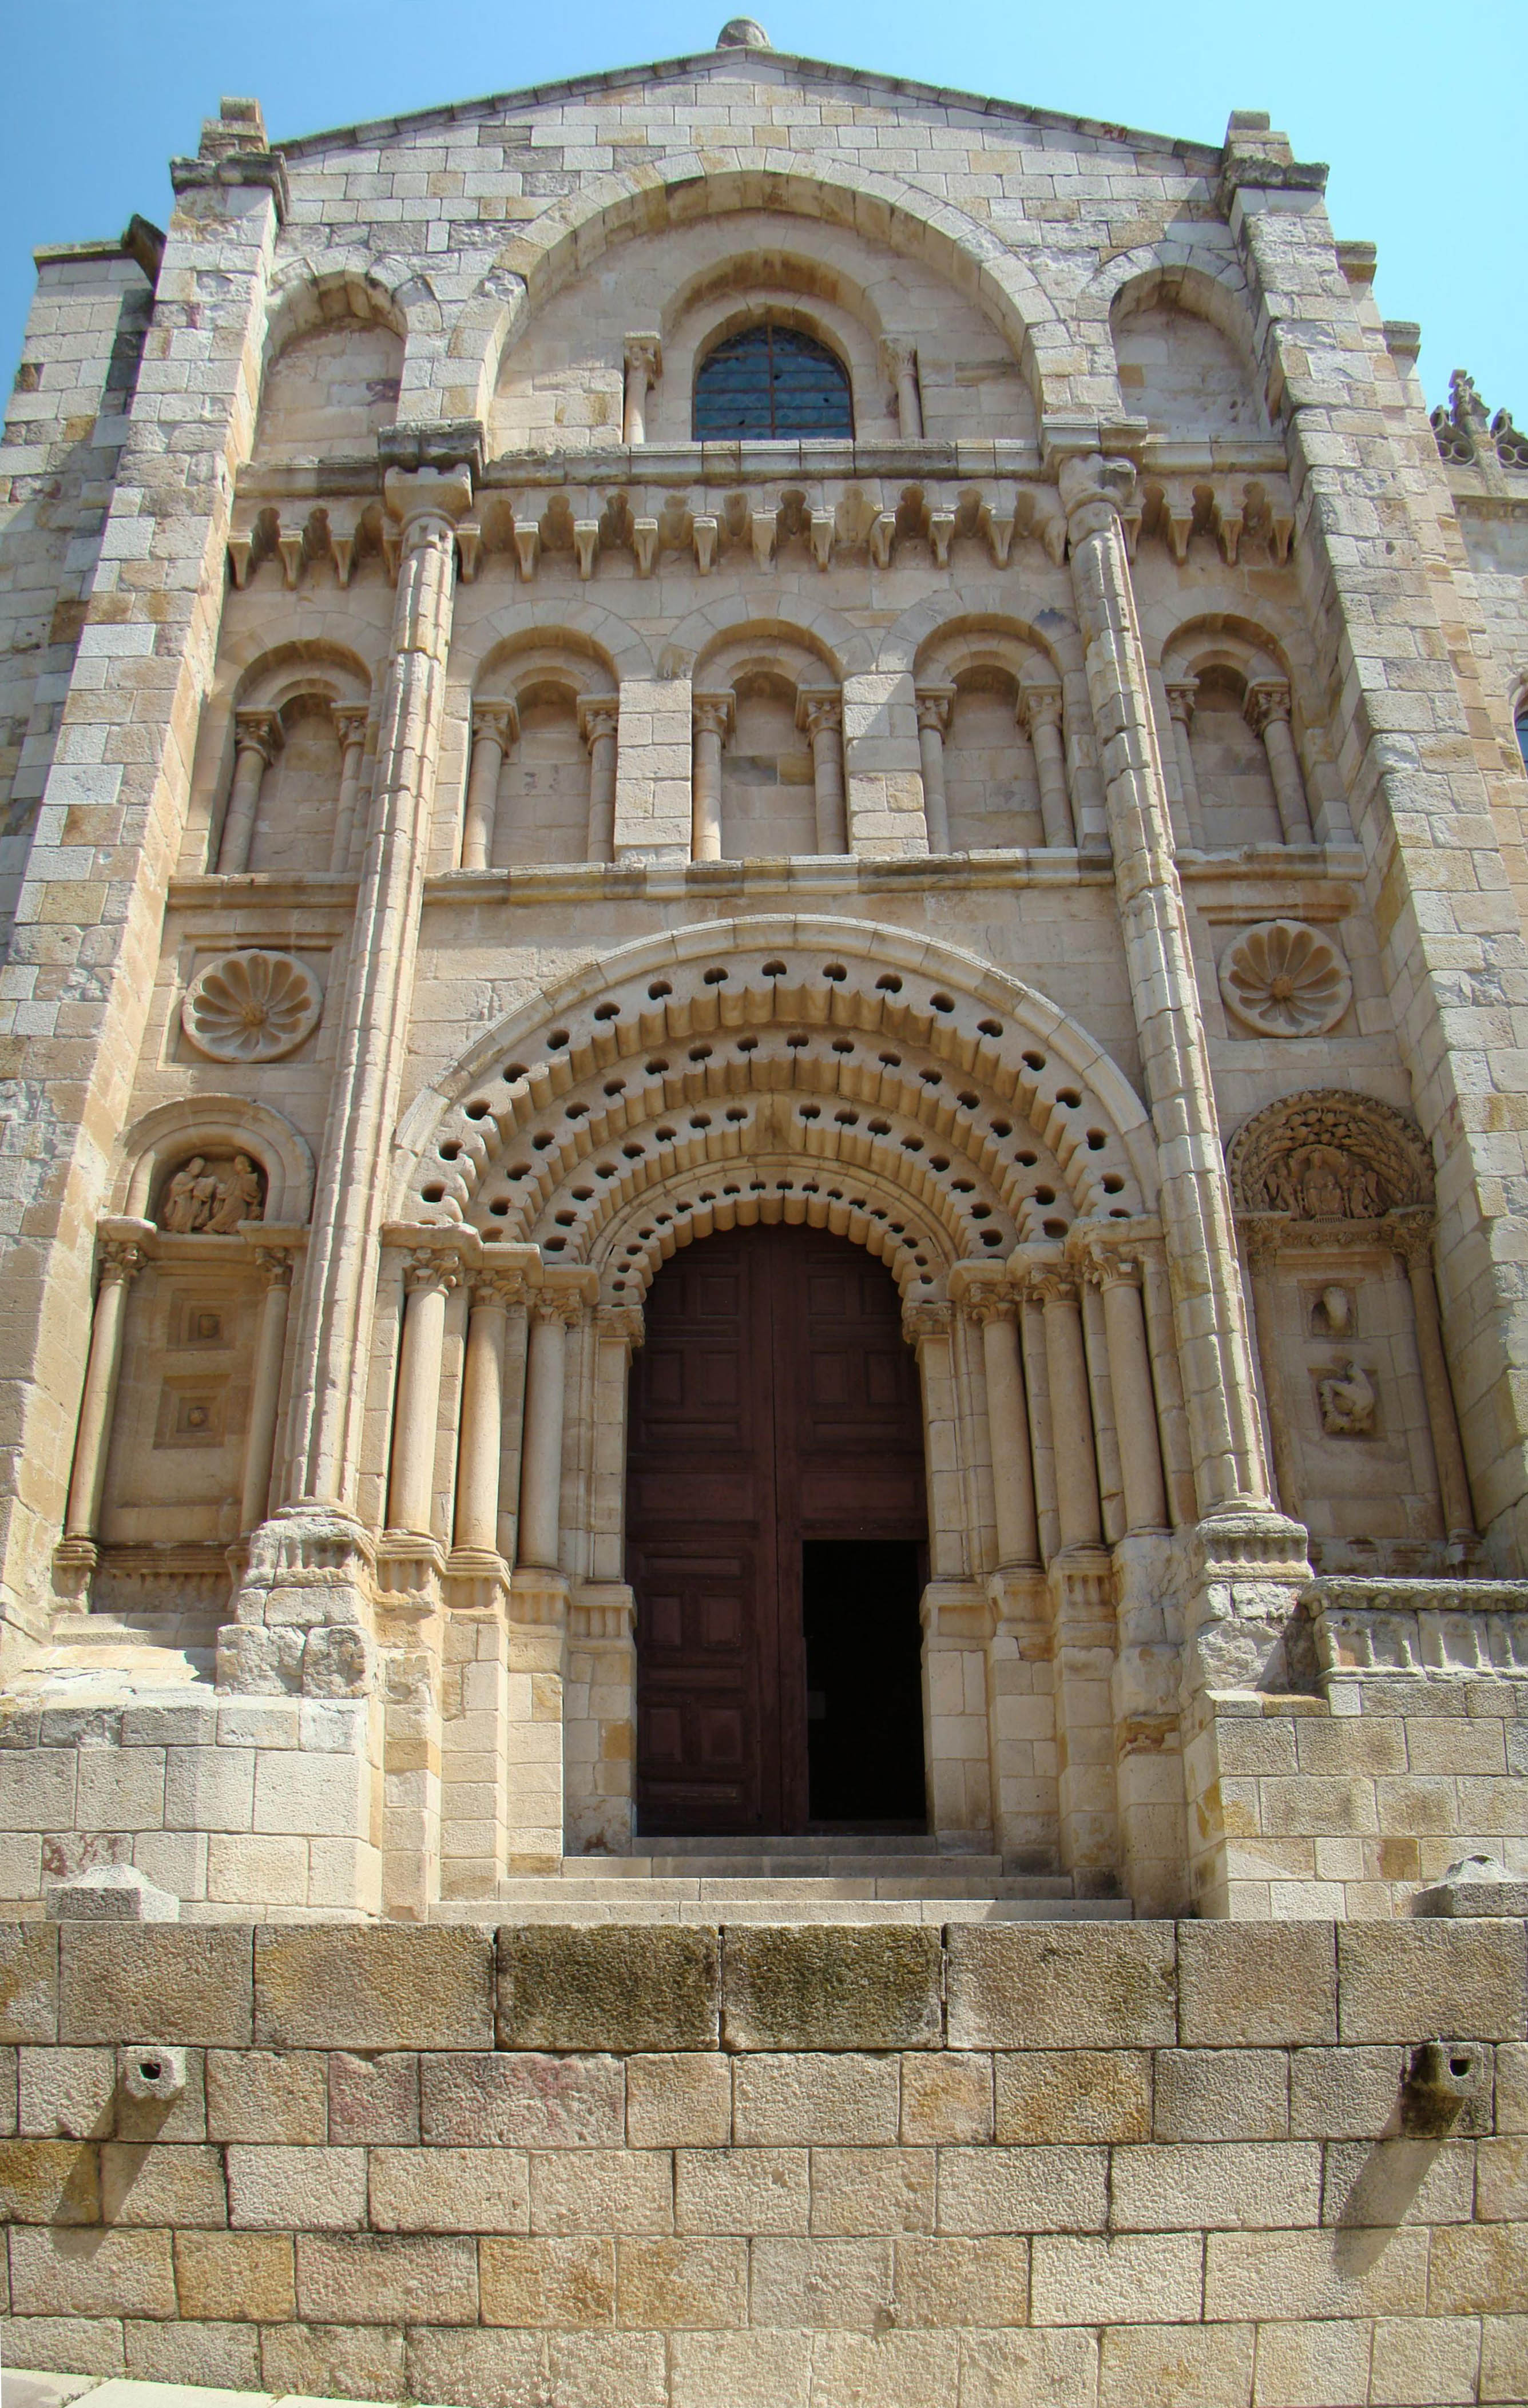 zamora dating Zamora is a richly diverse province (the southern facade is romanesque dating back to the 13th century) iglesia san andrés monastery (baroque.